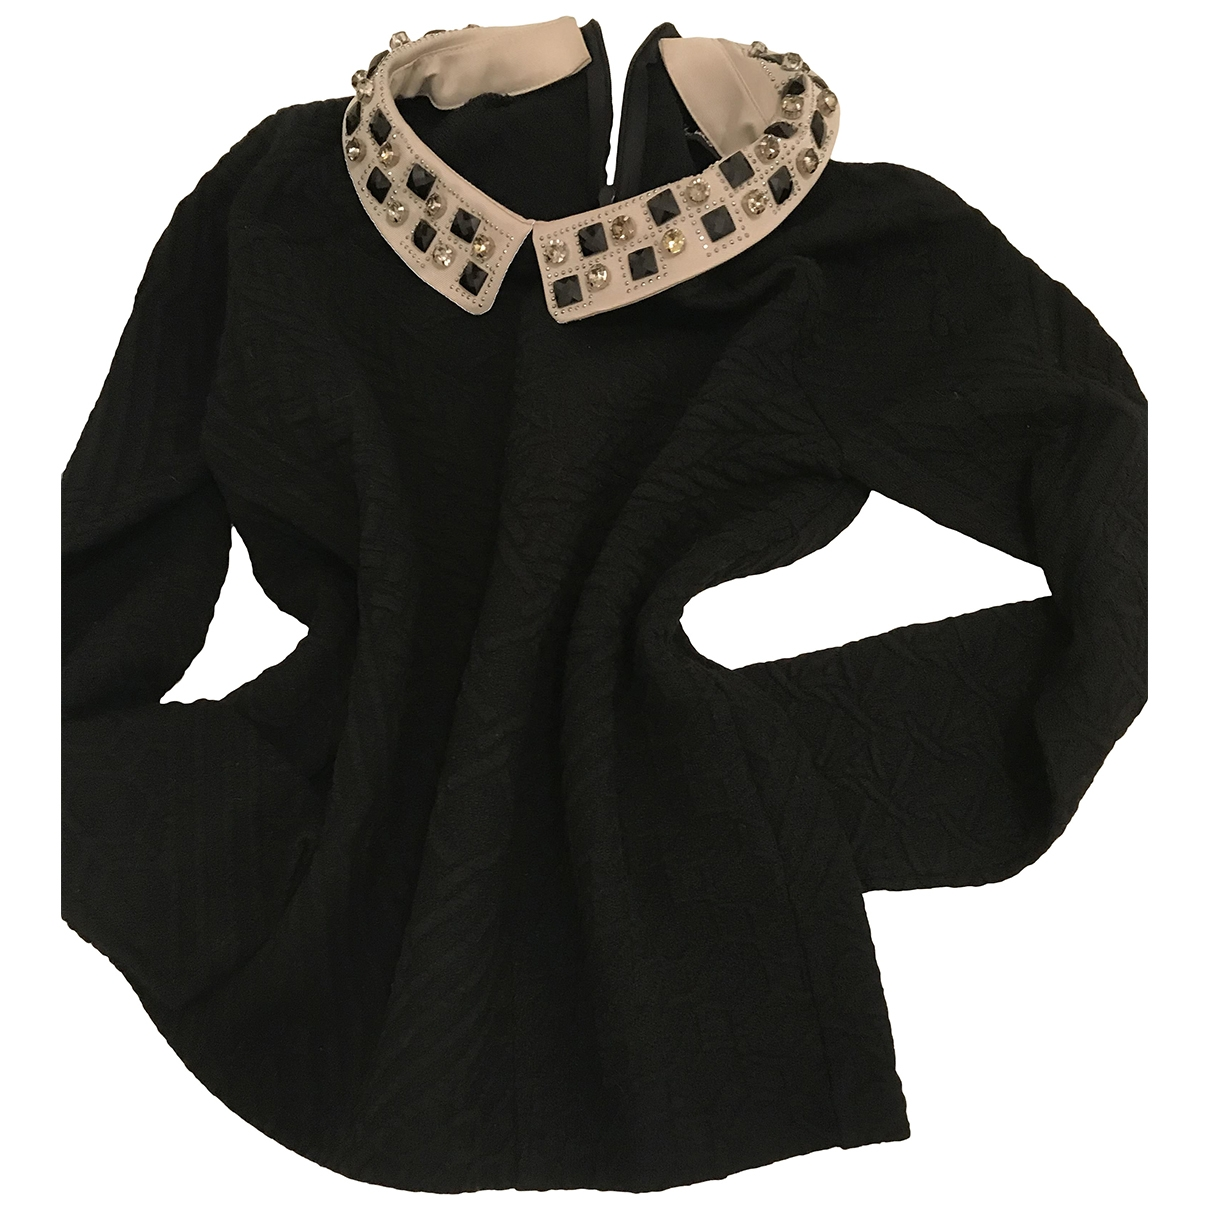 Max & Co \N Black Knitwear for Women S International